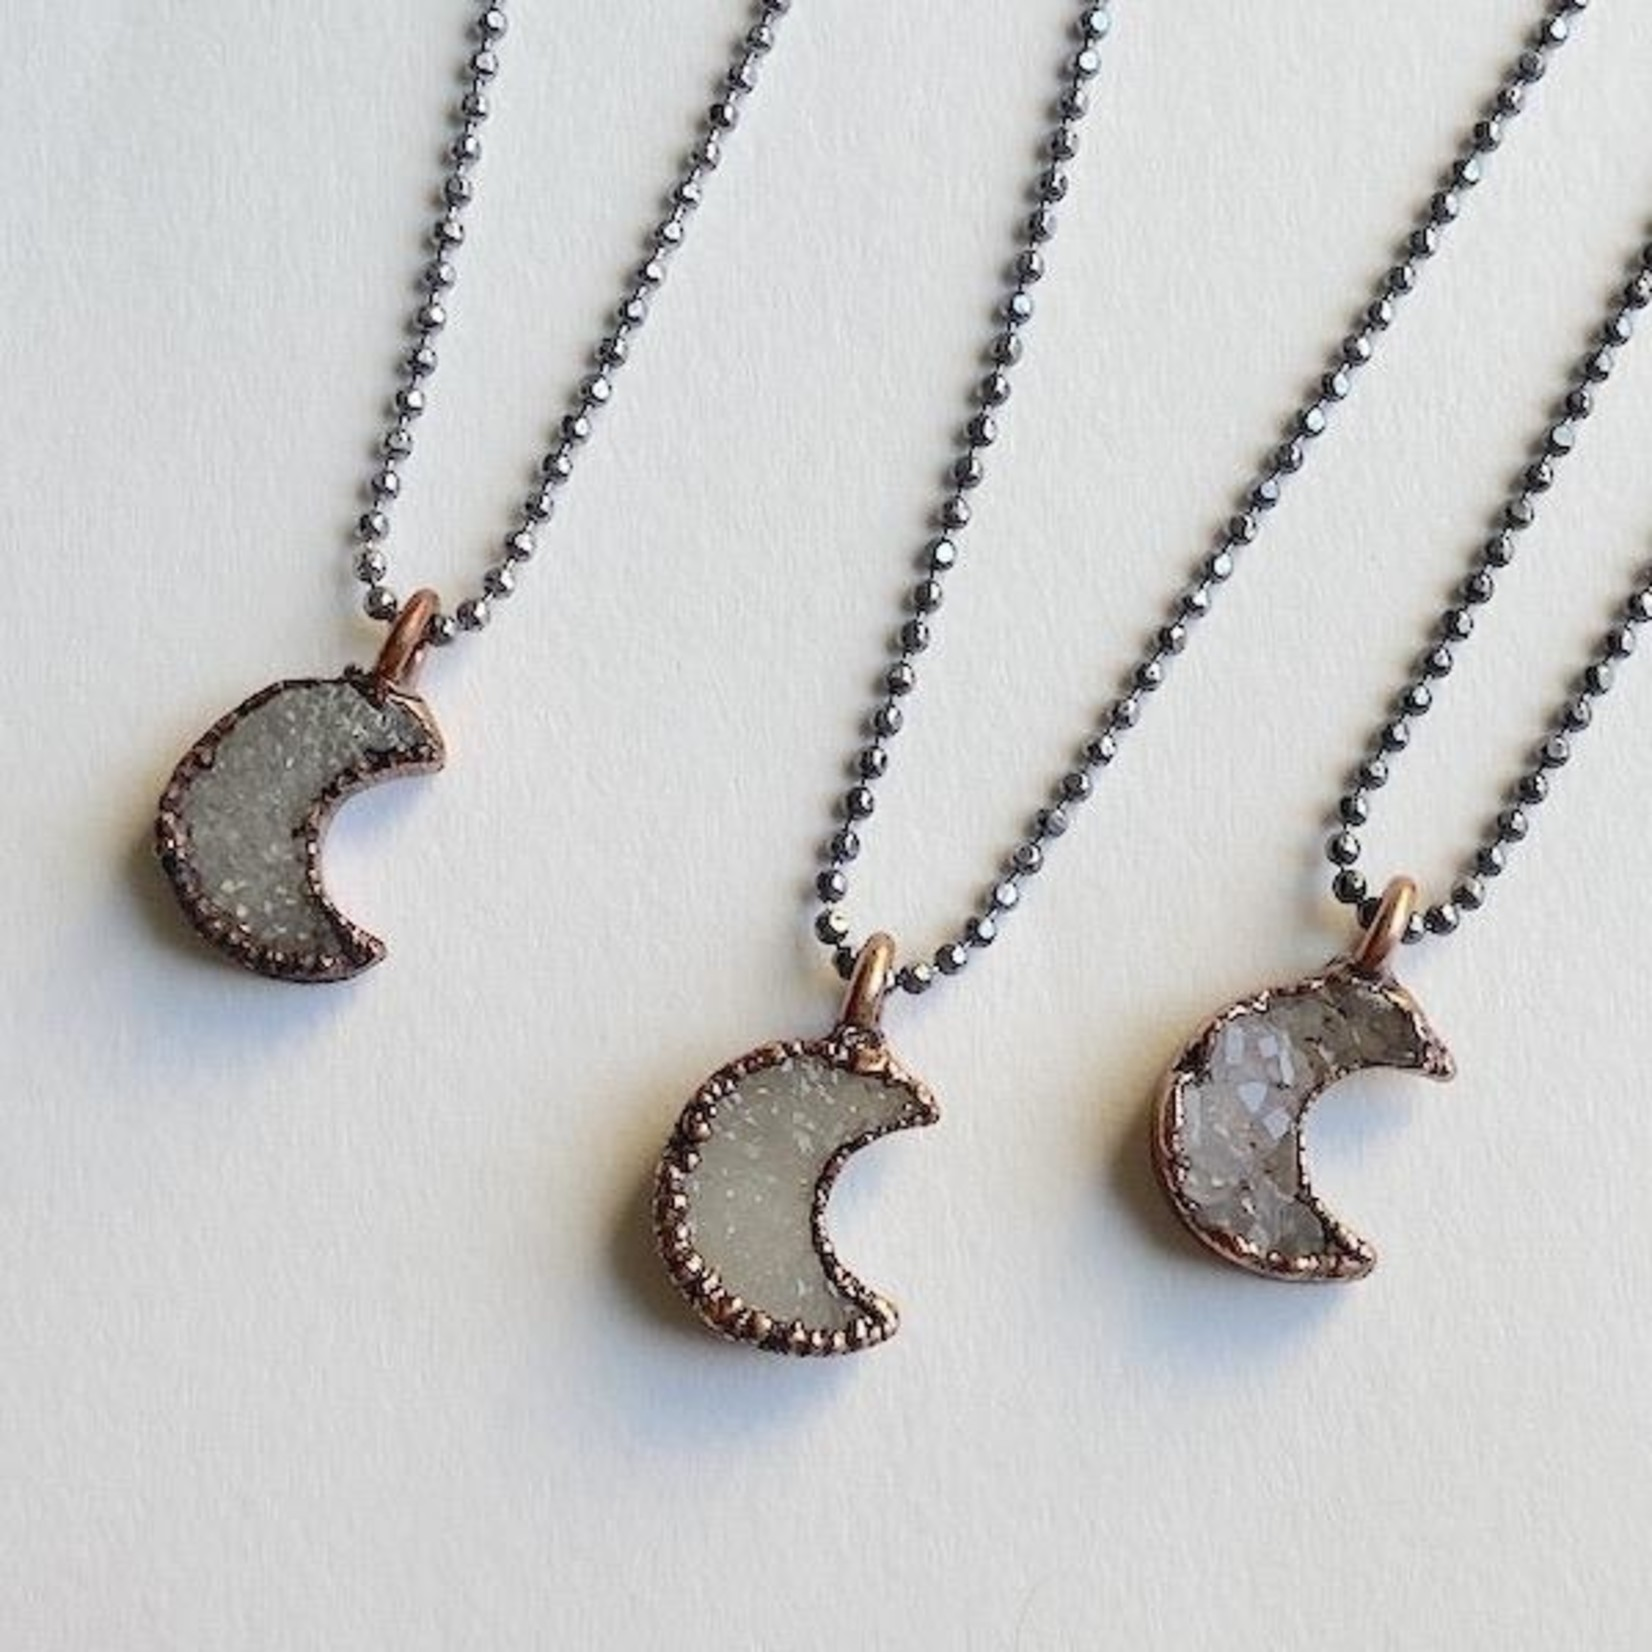 """Small Crescent Moon Shape Electroformed Druzy Pendant on 18"""" Oxidized Faceted Ball Chain Necklace"""